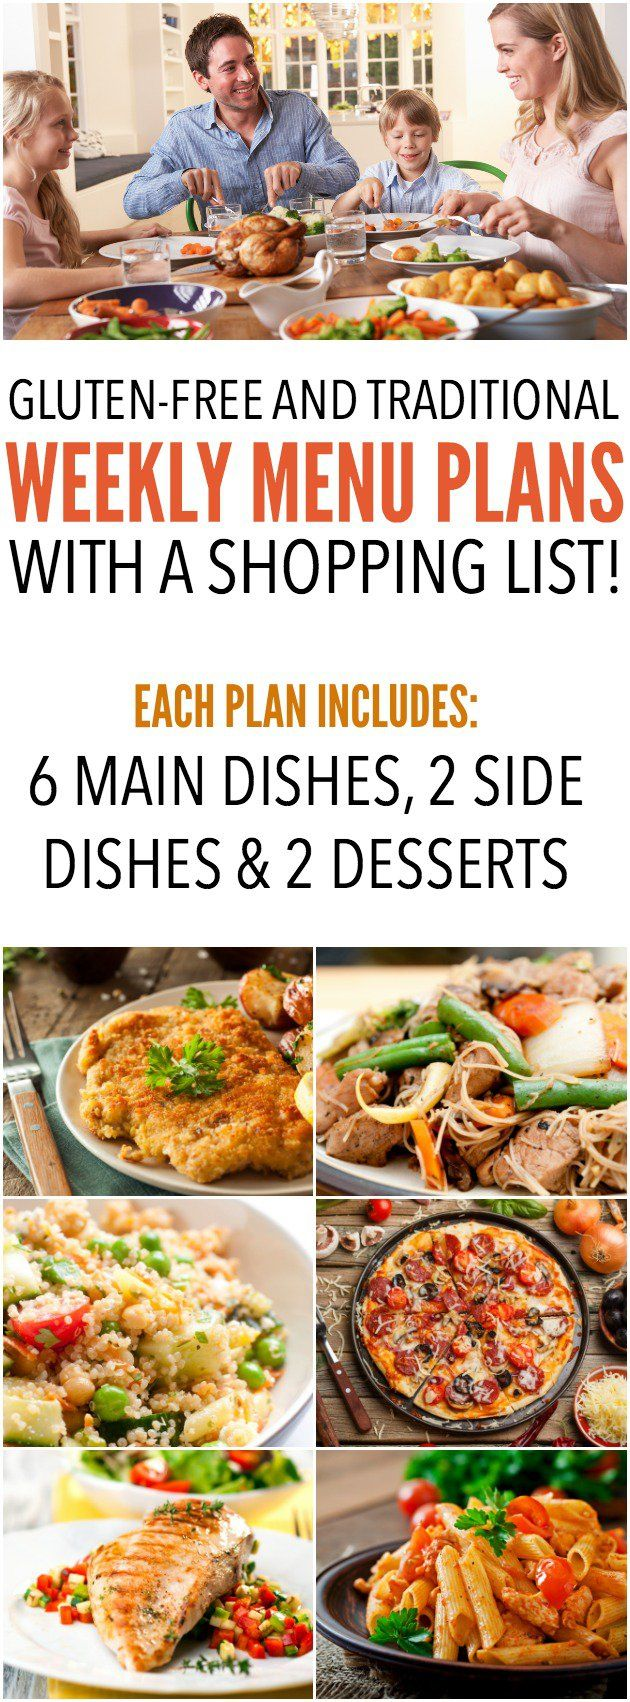 Gluten-Free and traditional weekly menu plans with a shopping list! This has been an absolute lifesaver! SixSistersMenuPlan.com